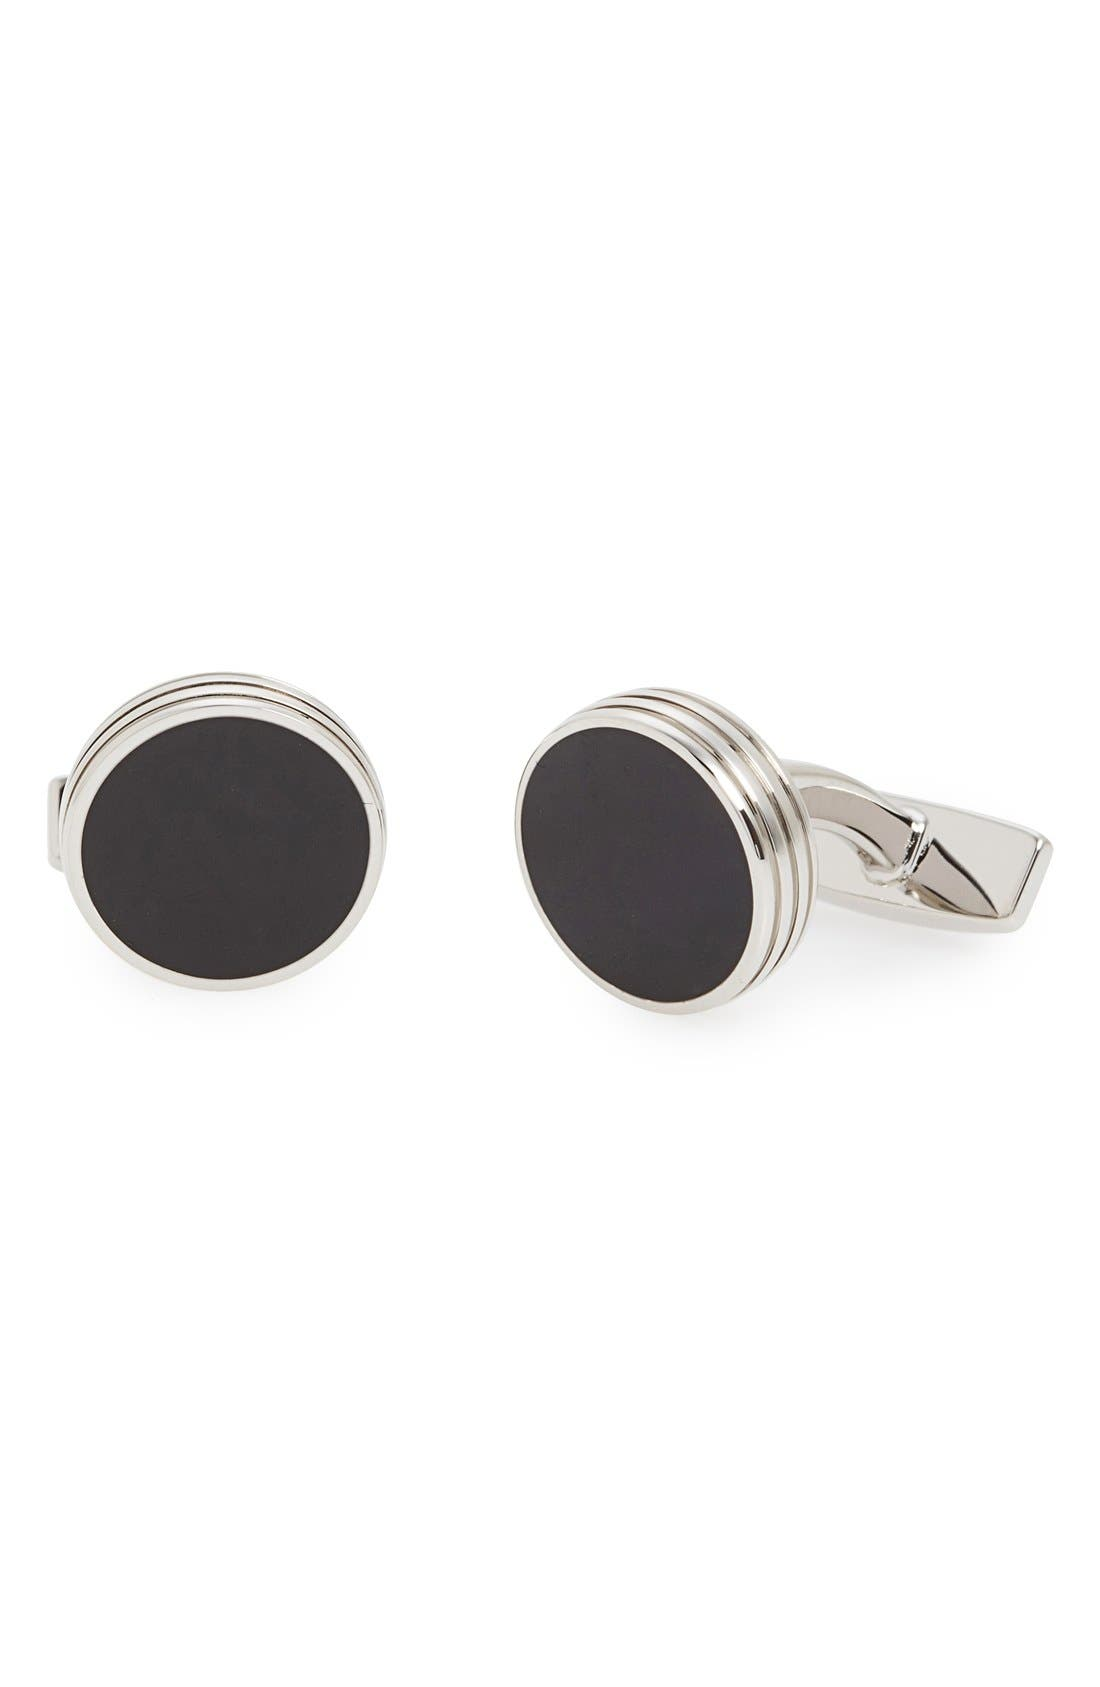 'Roy' Cuff Links,                             Main thumbnail 1, color,                             SILVER/ BLACK